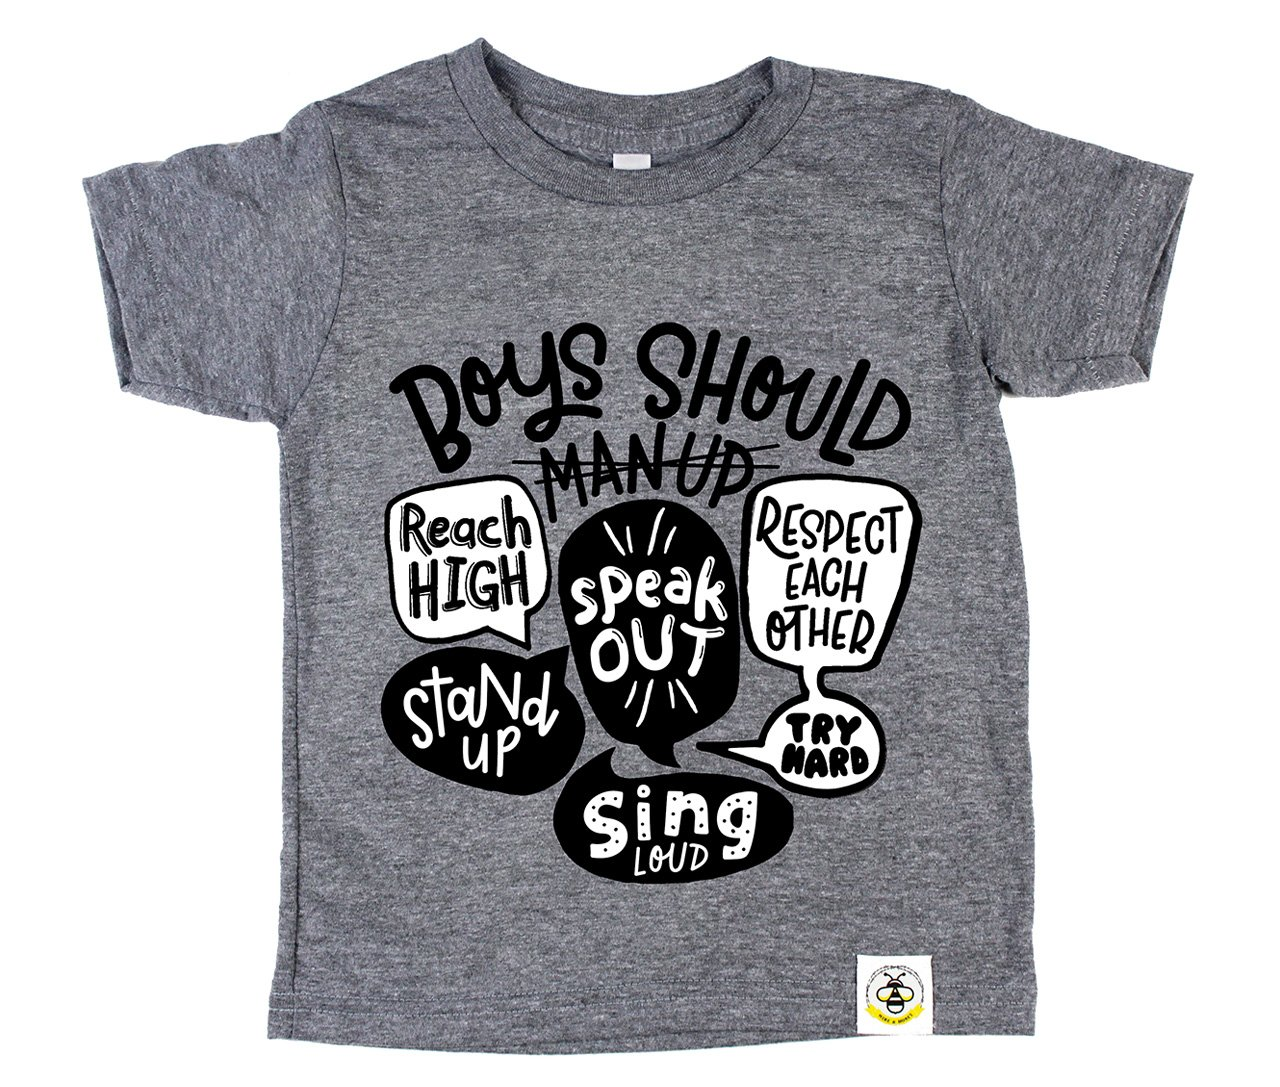 Make a bold statement with our Funky T-Shirts, or choose from our wide variety of expressive graphic tees for any season, interest or occasion. Whether you want a sarcastic t-shirt or a geeky t-shirt to embrace your inner nerd, CafePress has the tee you're looking for.